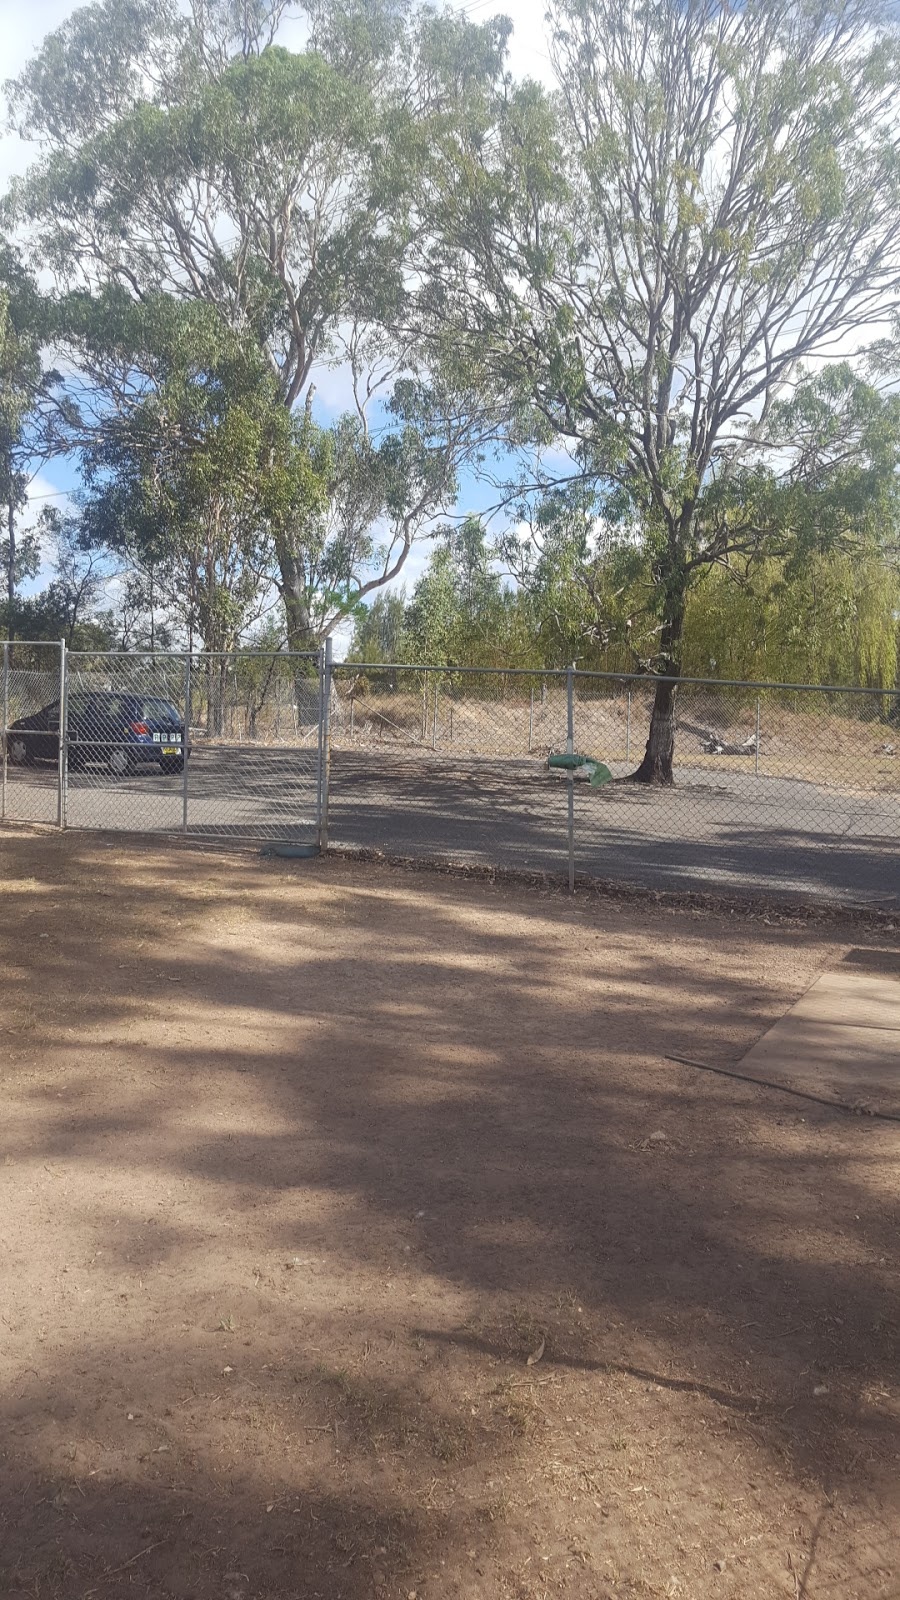 Minto Dog Park | park | 1/9 Eagleview Rd, Minto NSW 2566, Australia